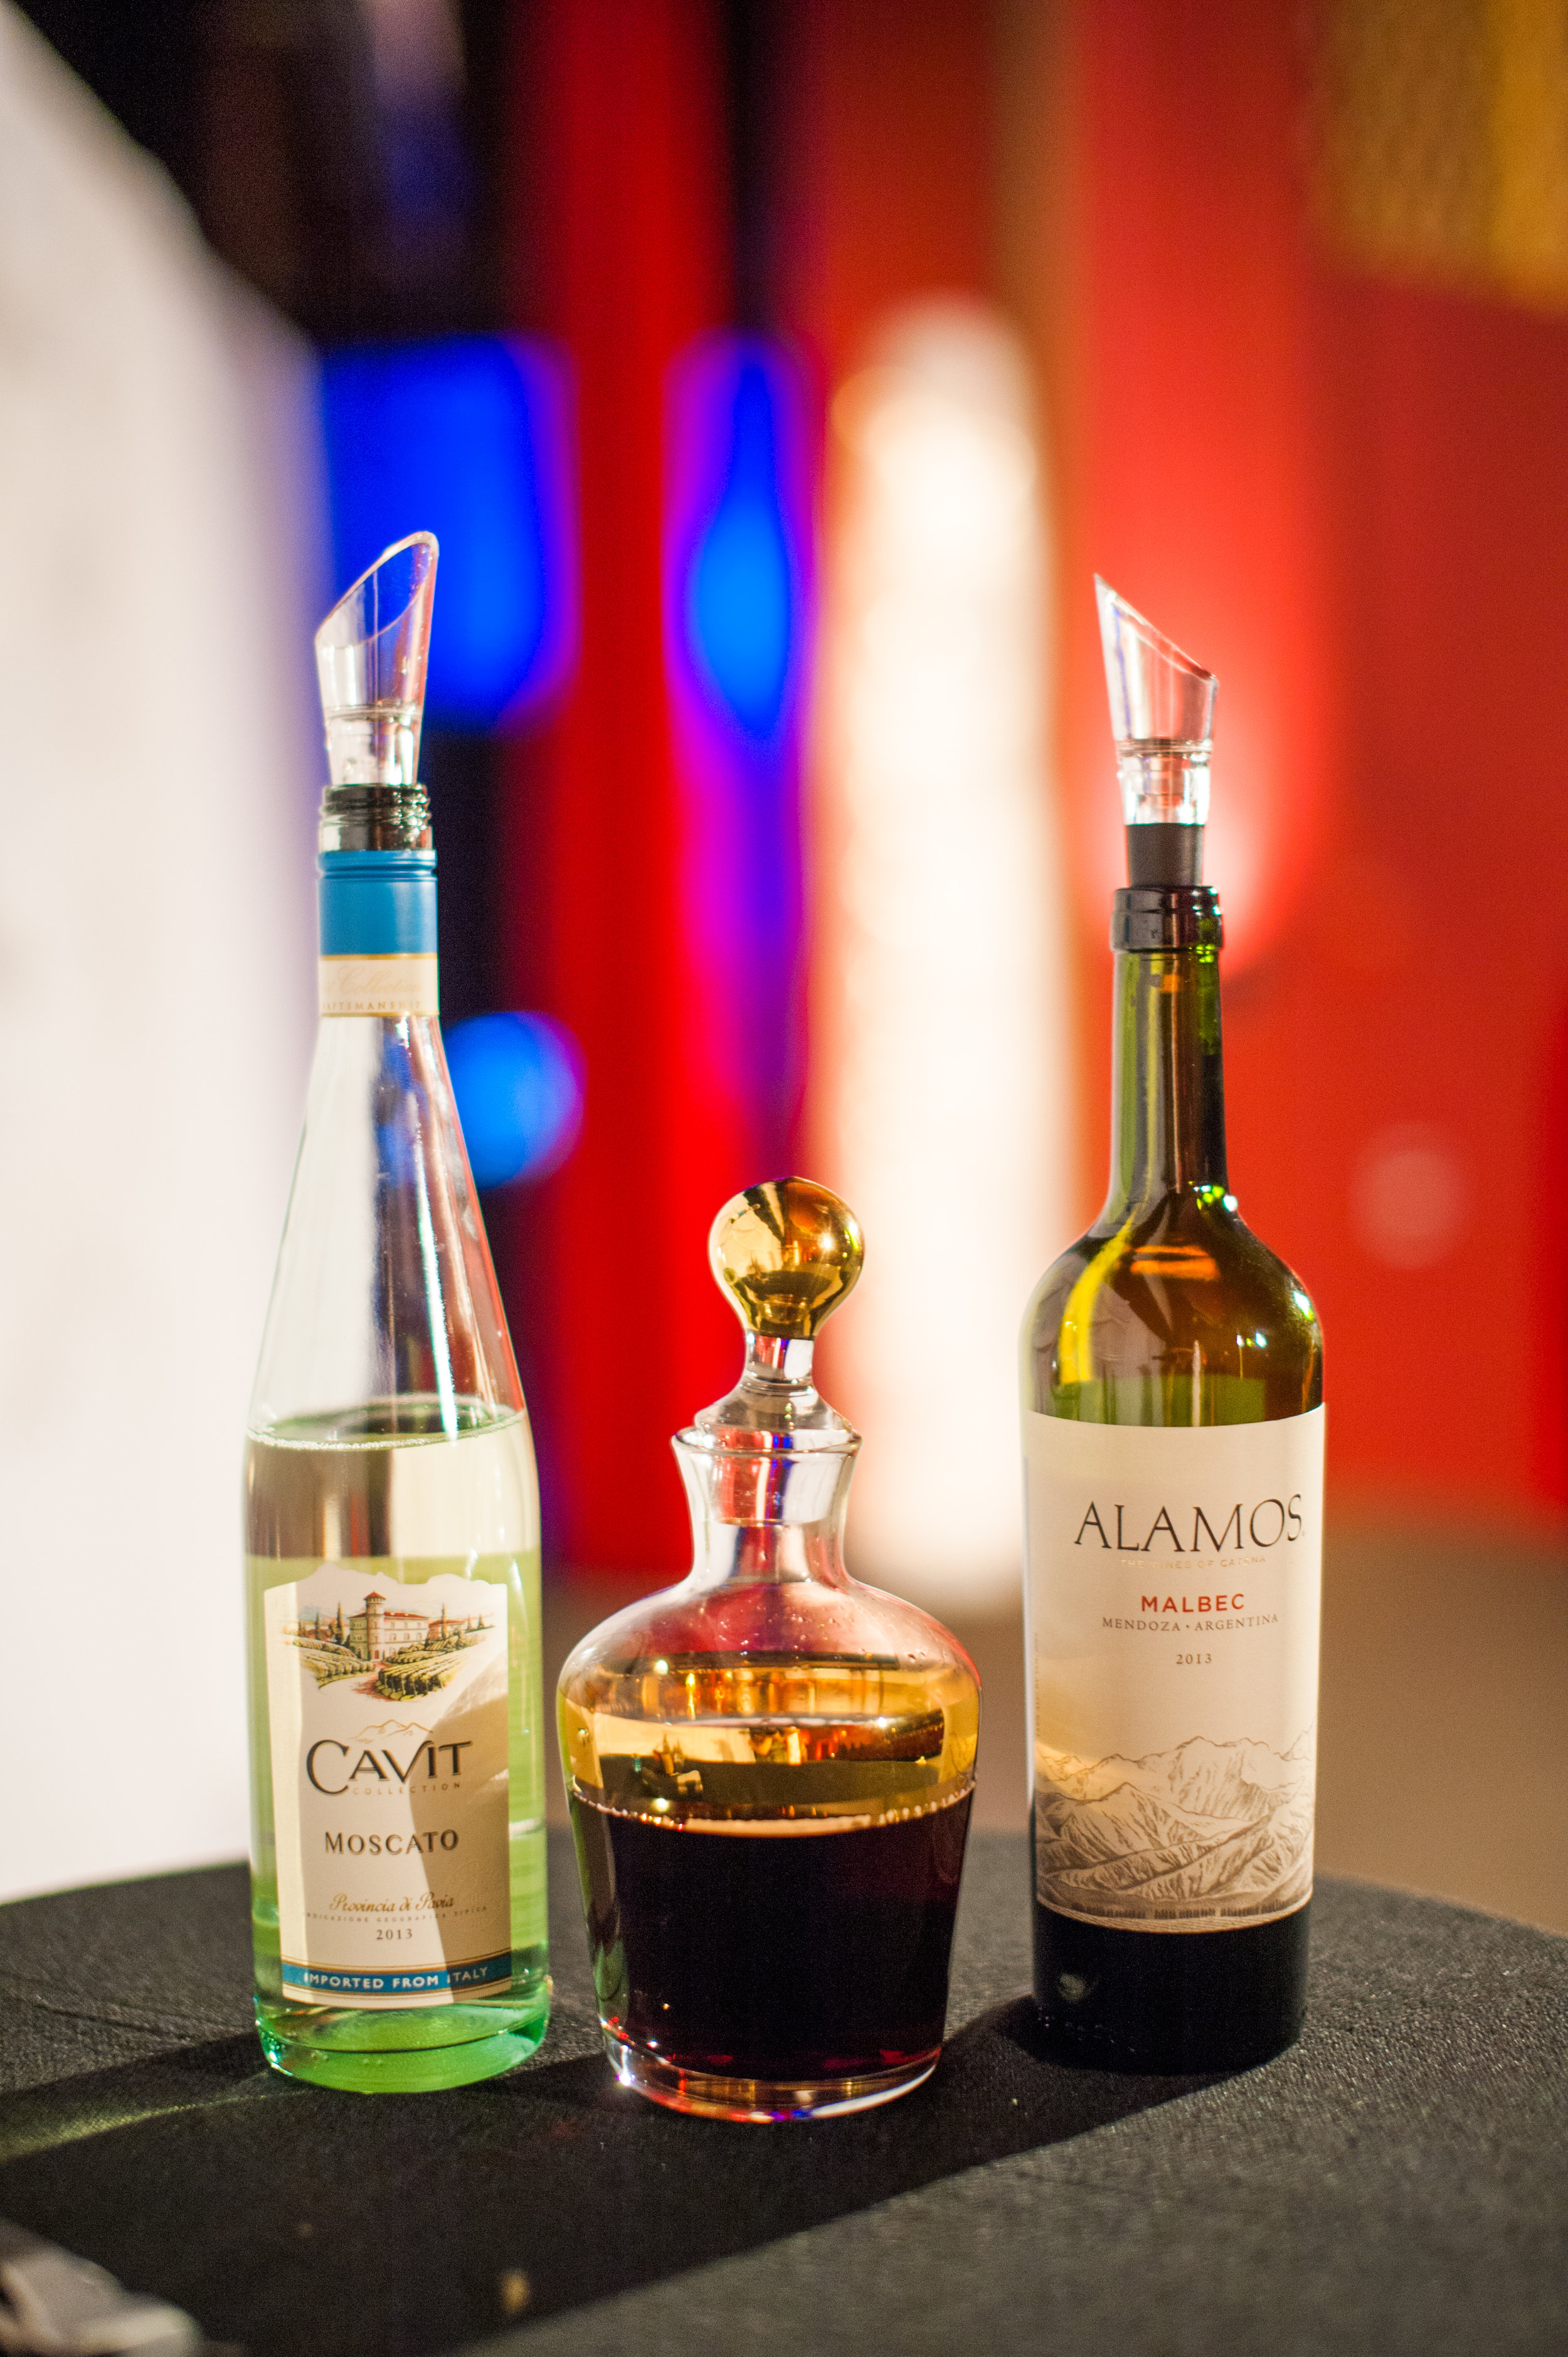 MERGE WINES TO CREATE A CUSTOM WINE. YOU SHARE YOUR NEW WINE ON YOUR 1ST ANNIVERSARY.